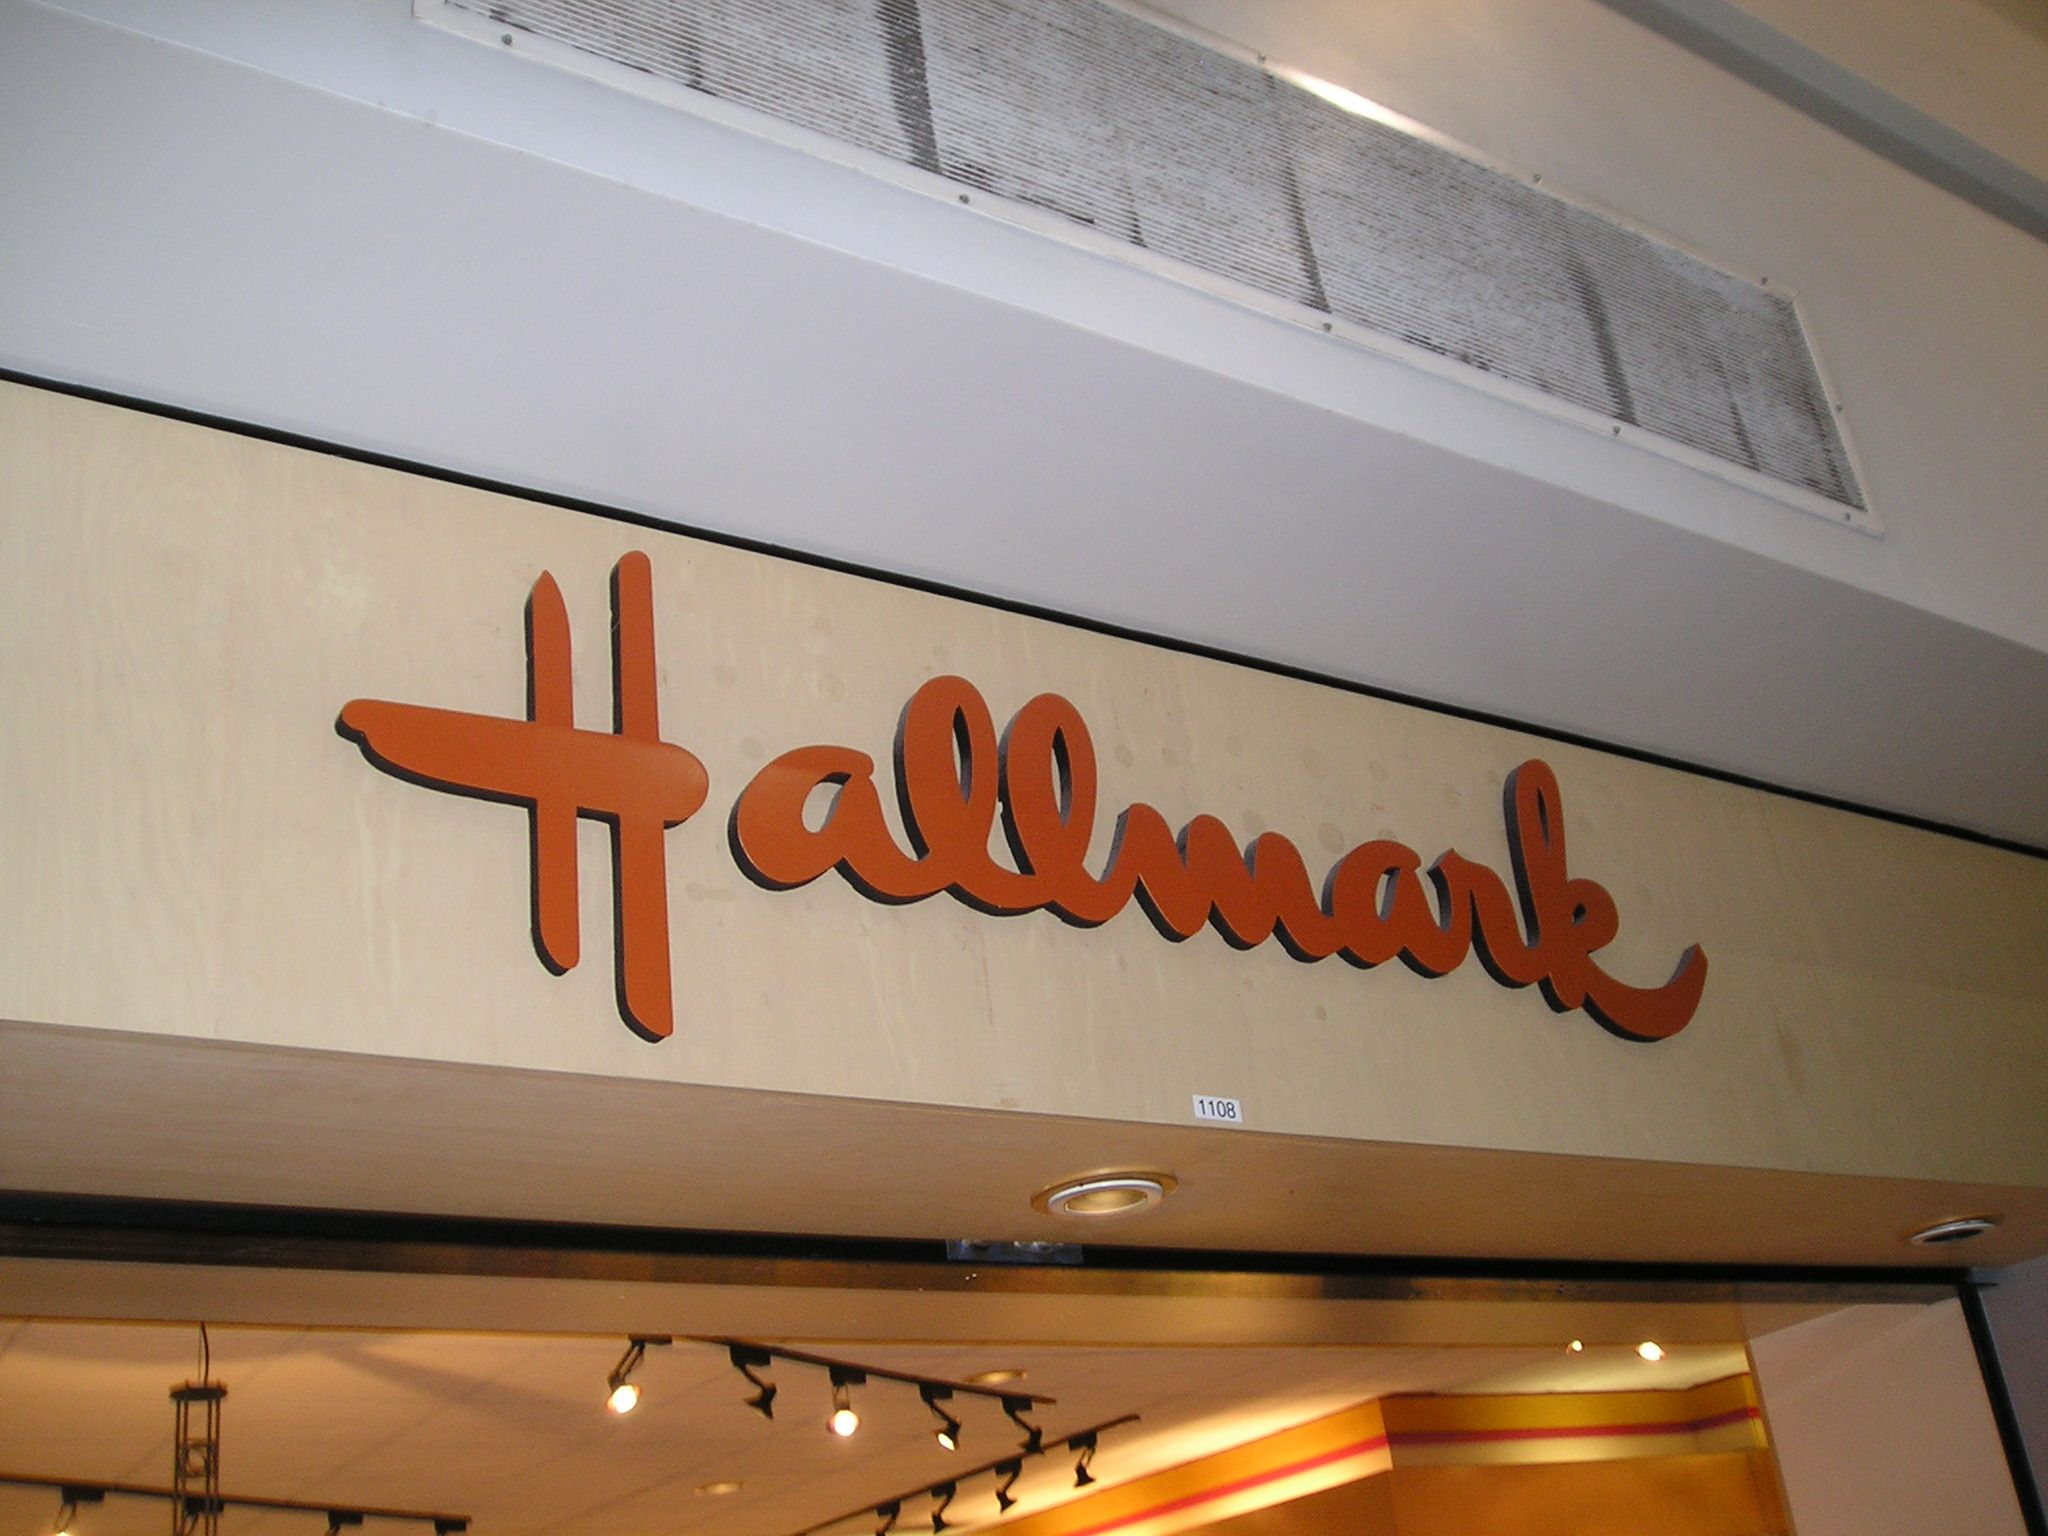 SA28344 - Shopping Mall Halmark Sign with Raised Outline Letters